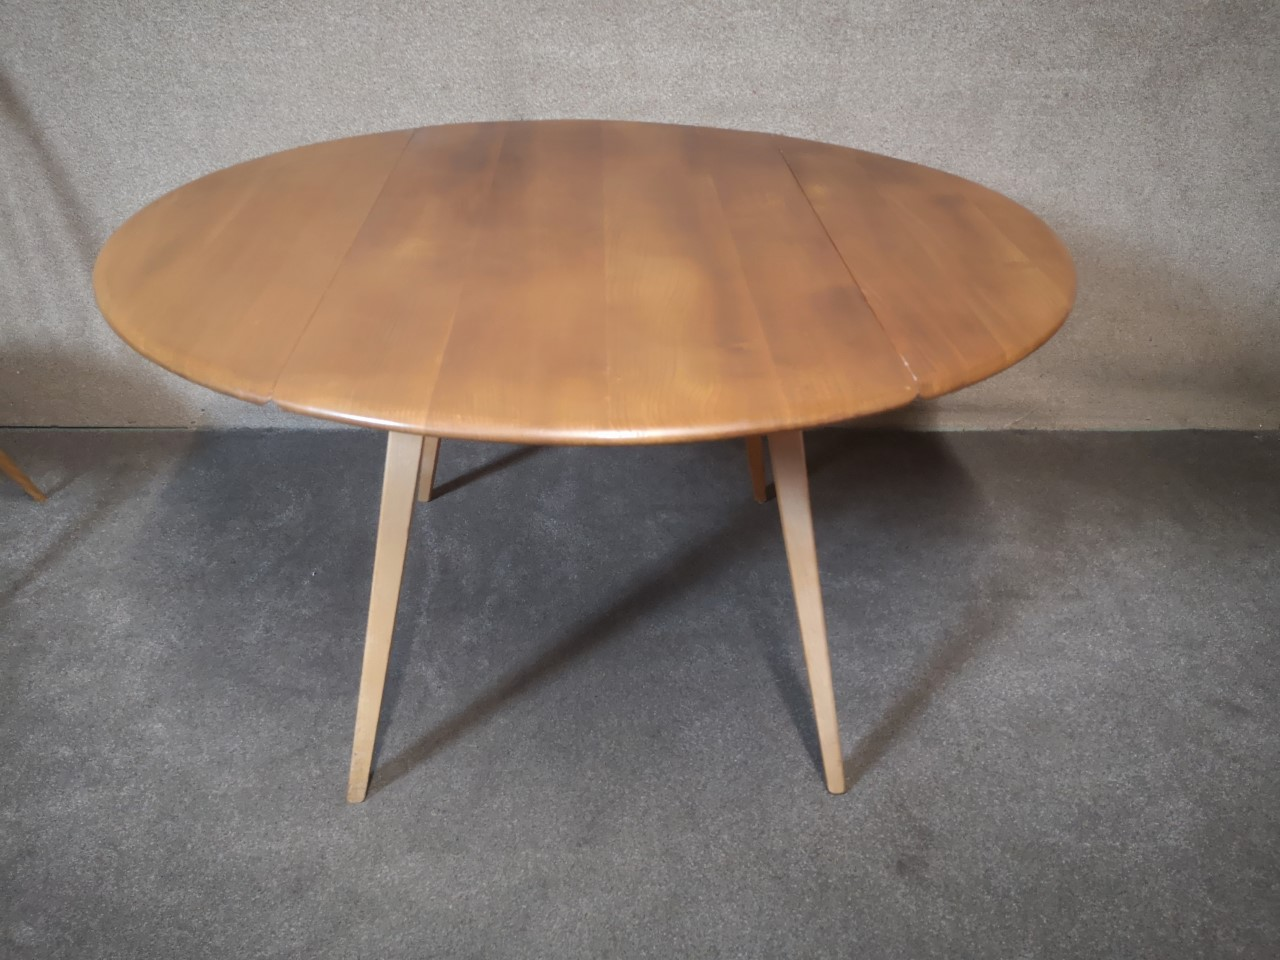 Ercol table and 4 chairs (table)画像